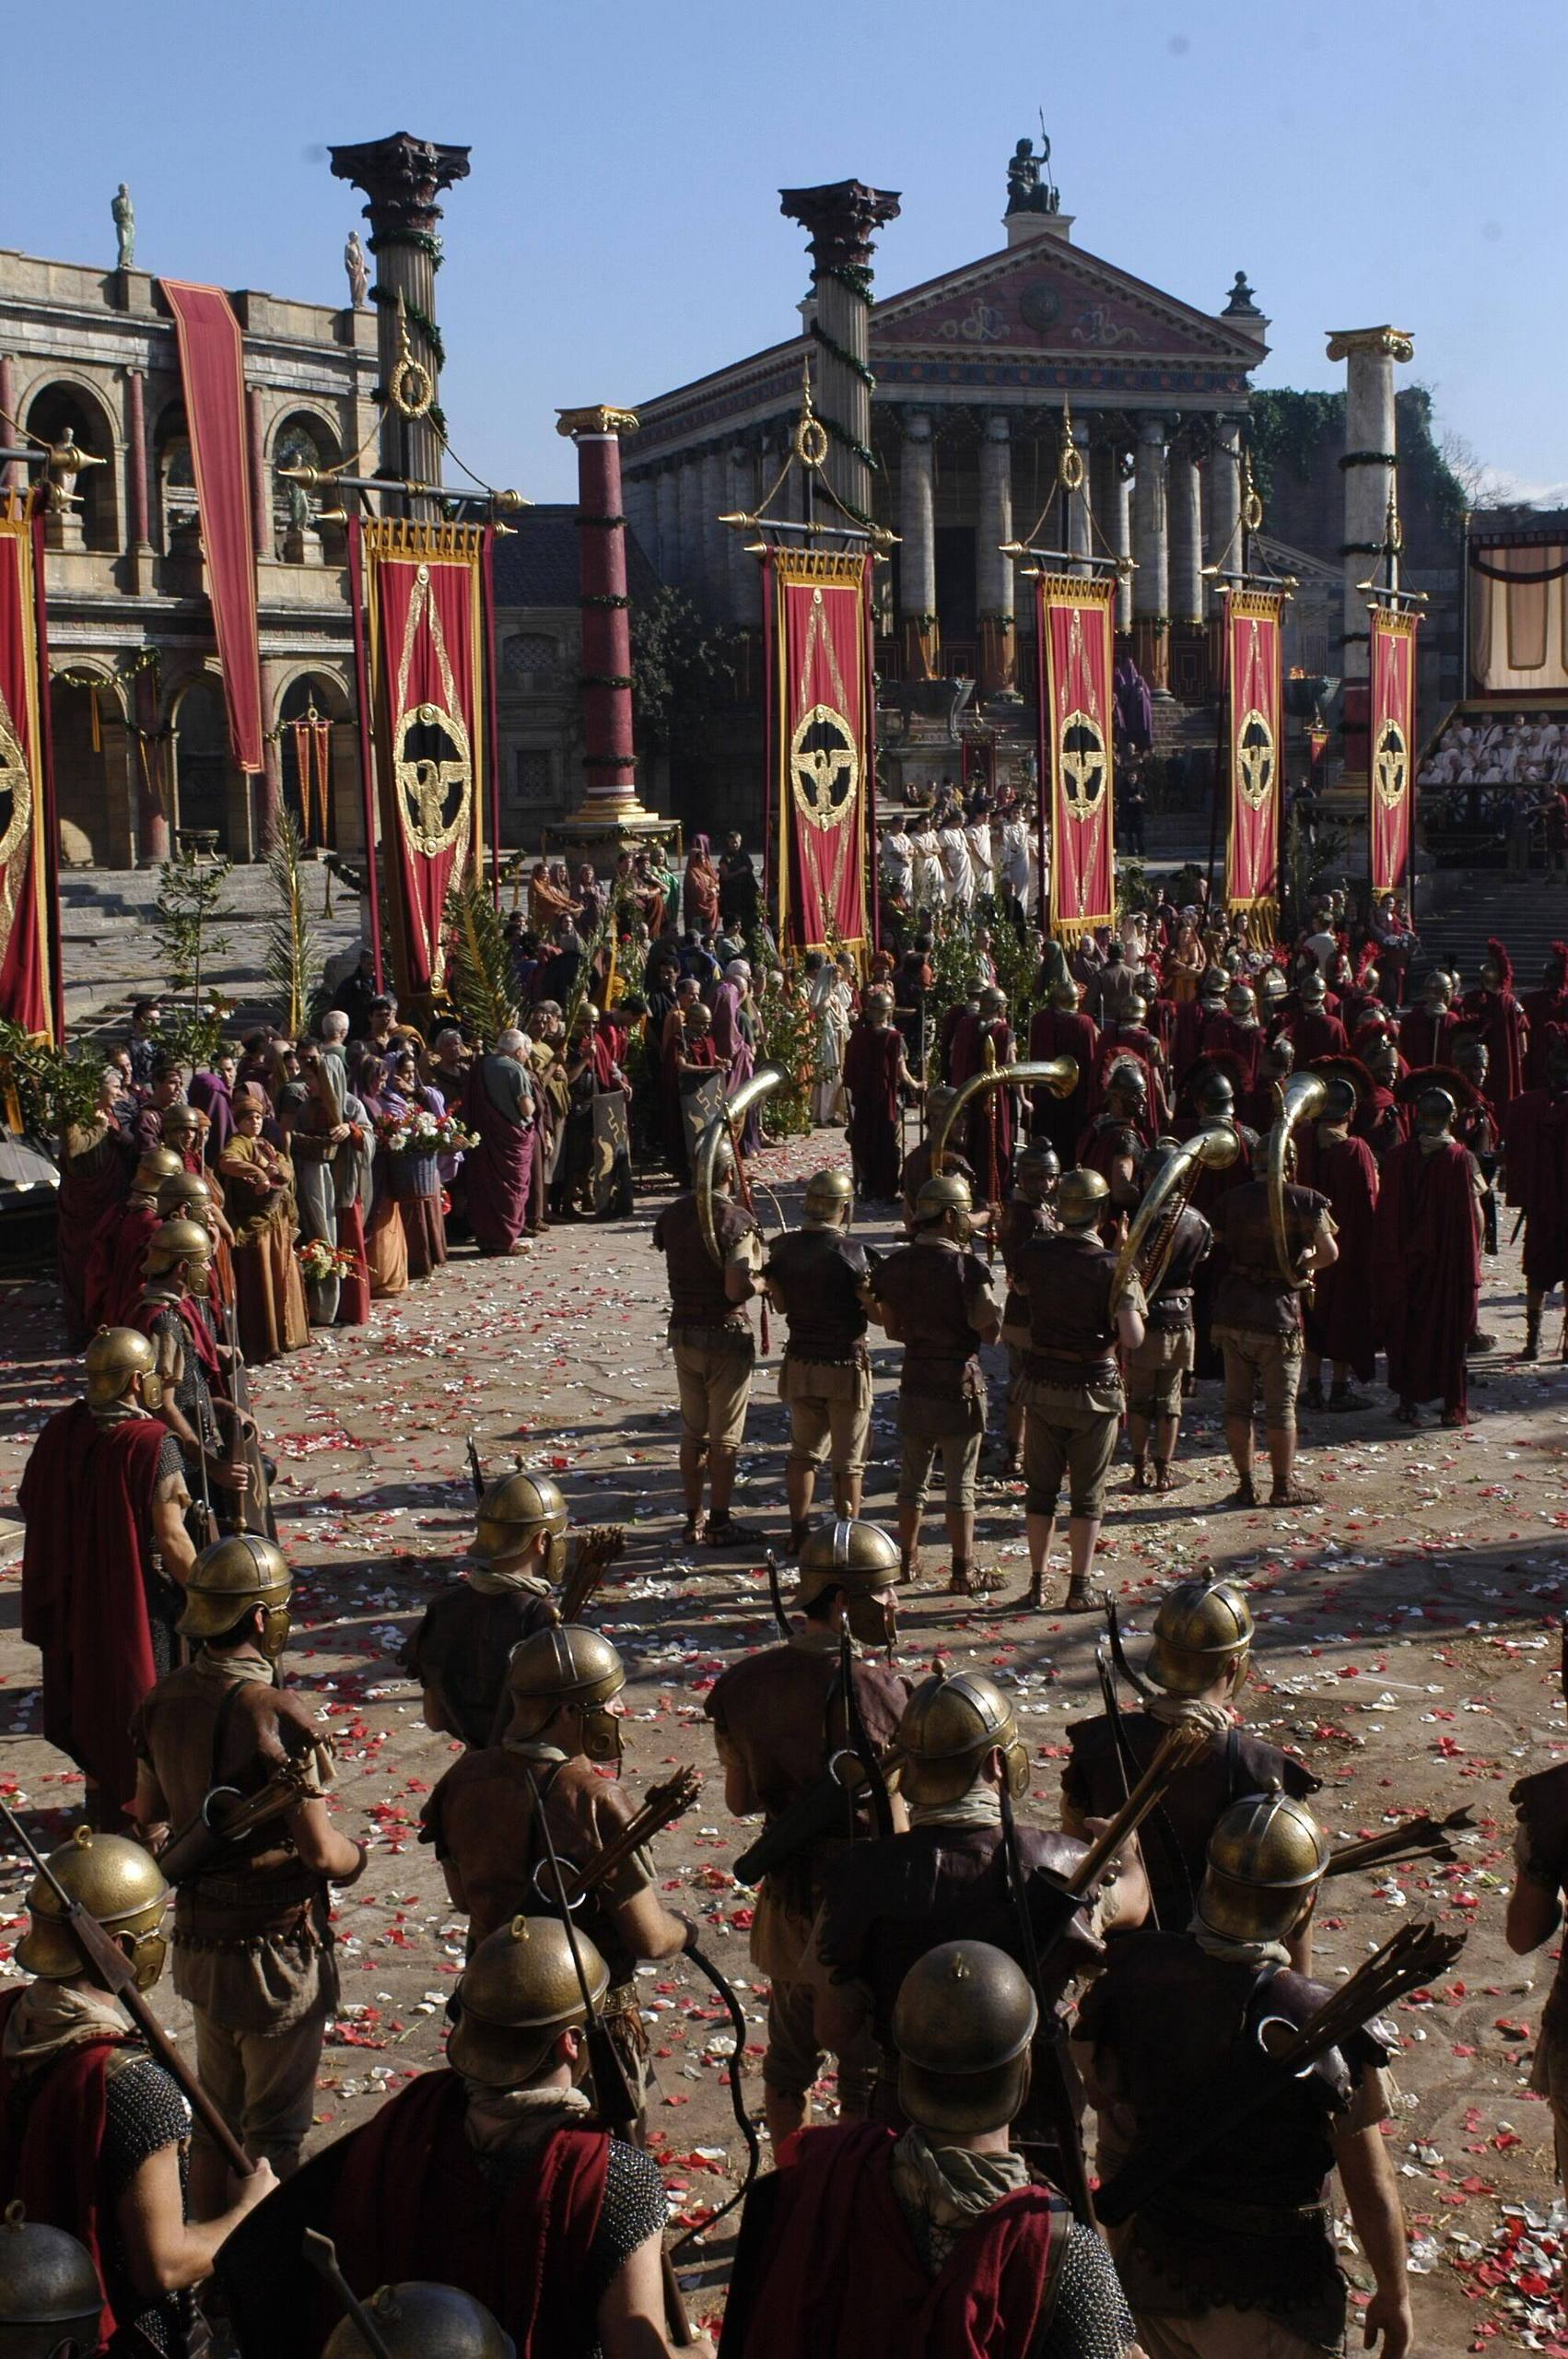 Hbo rome galleries 71